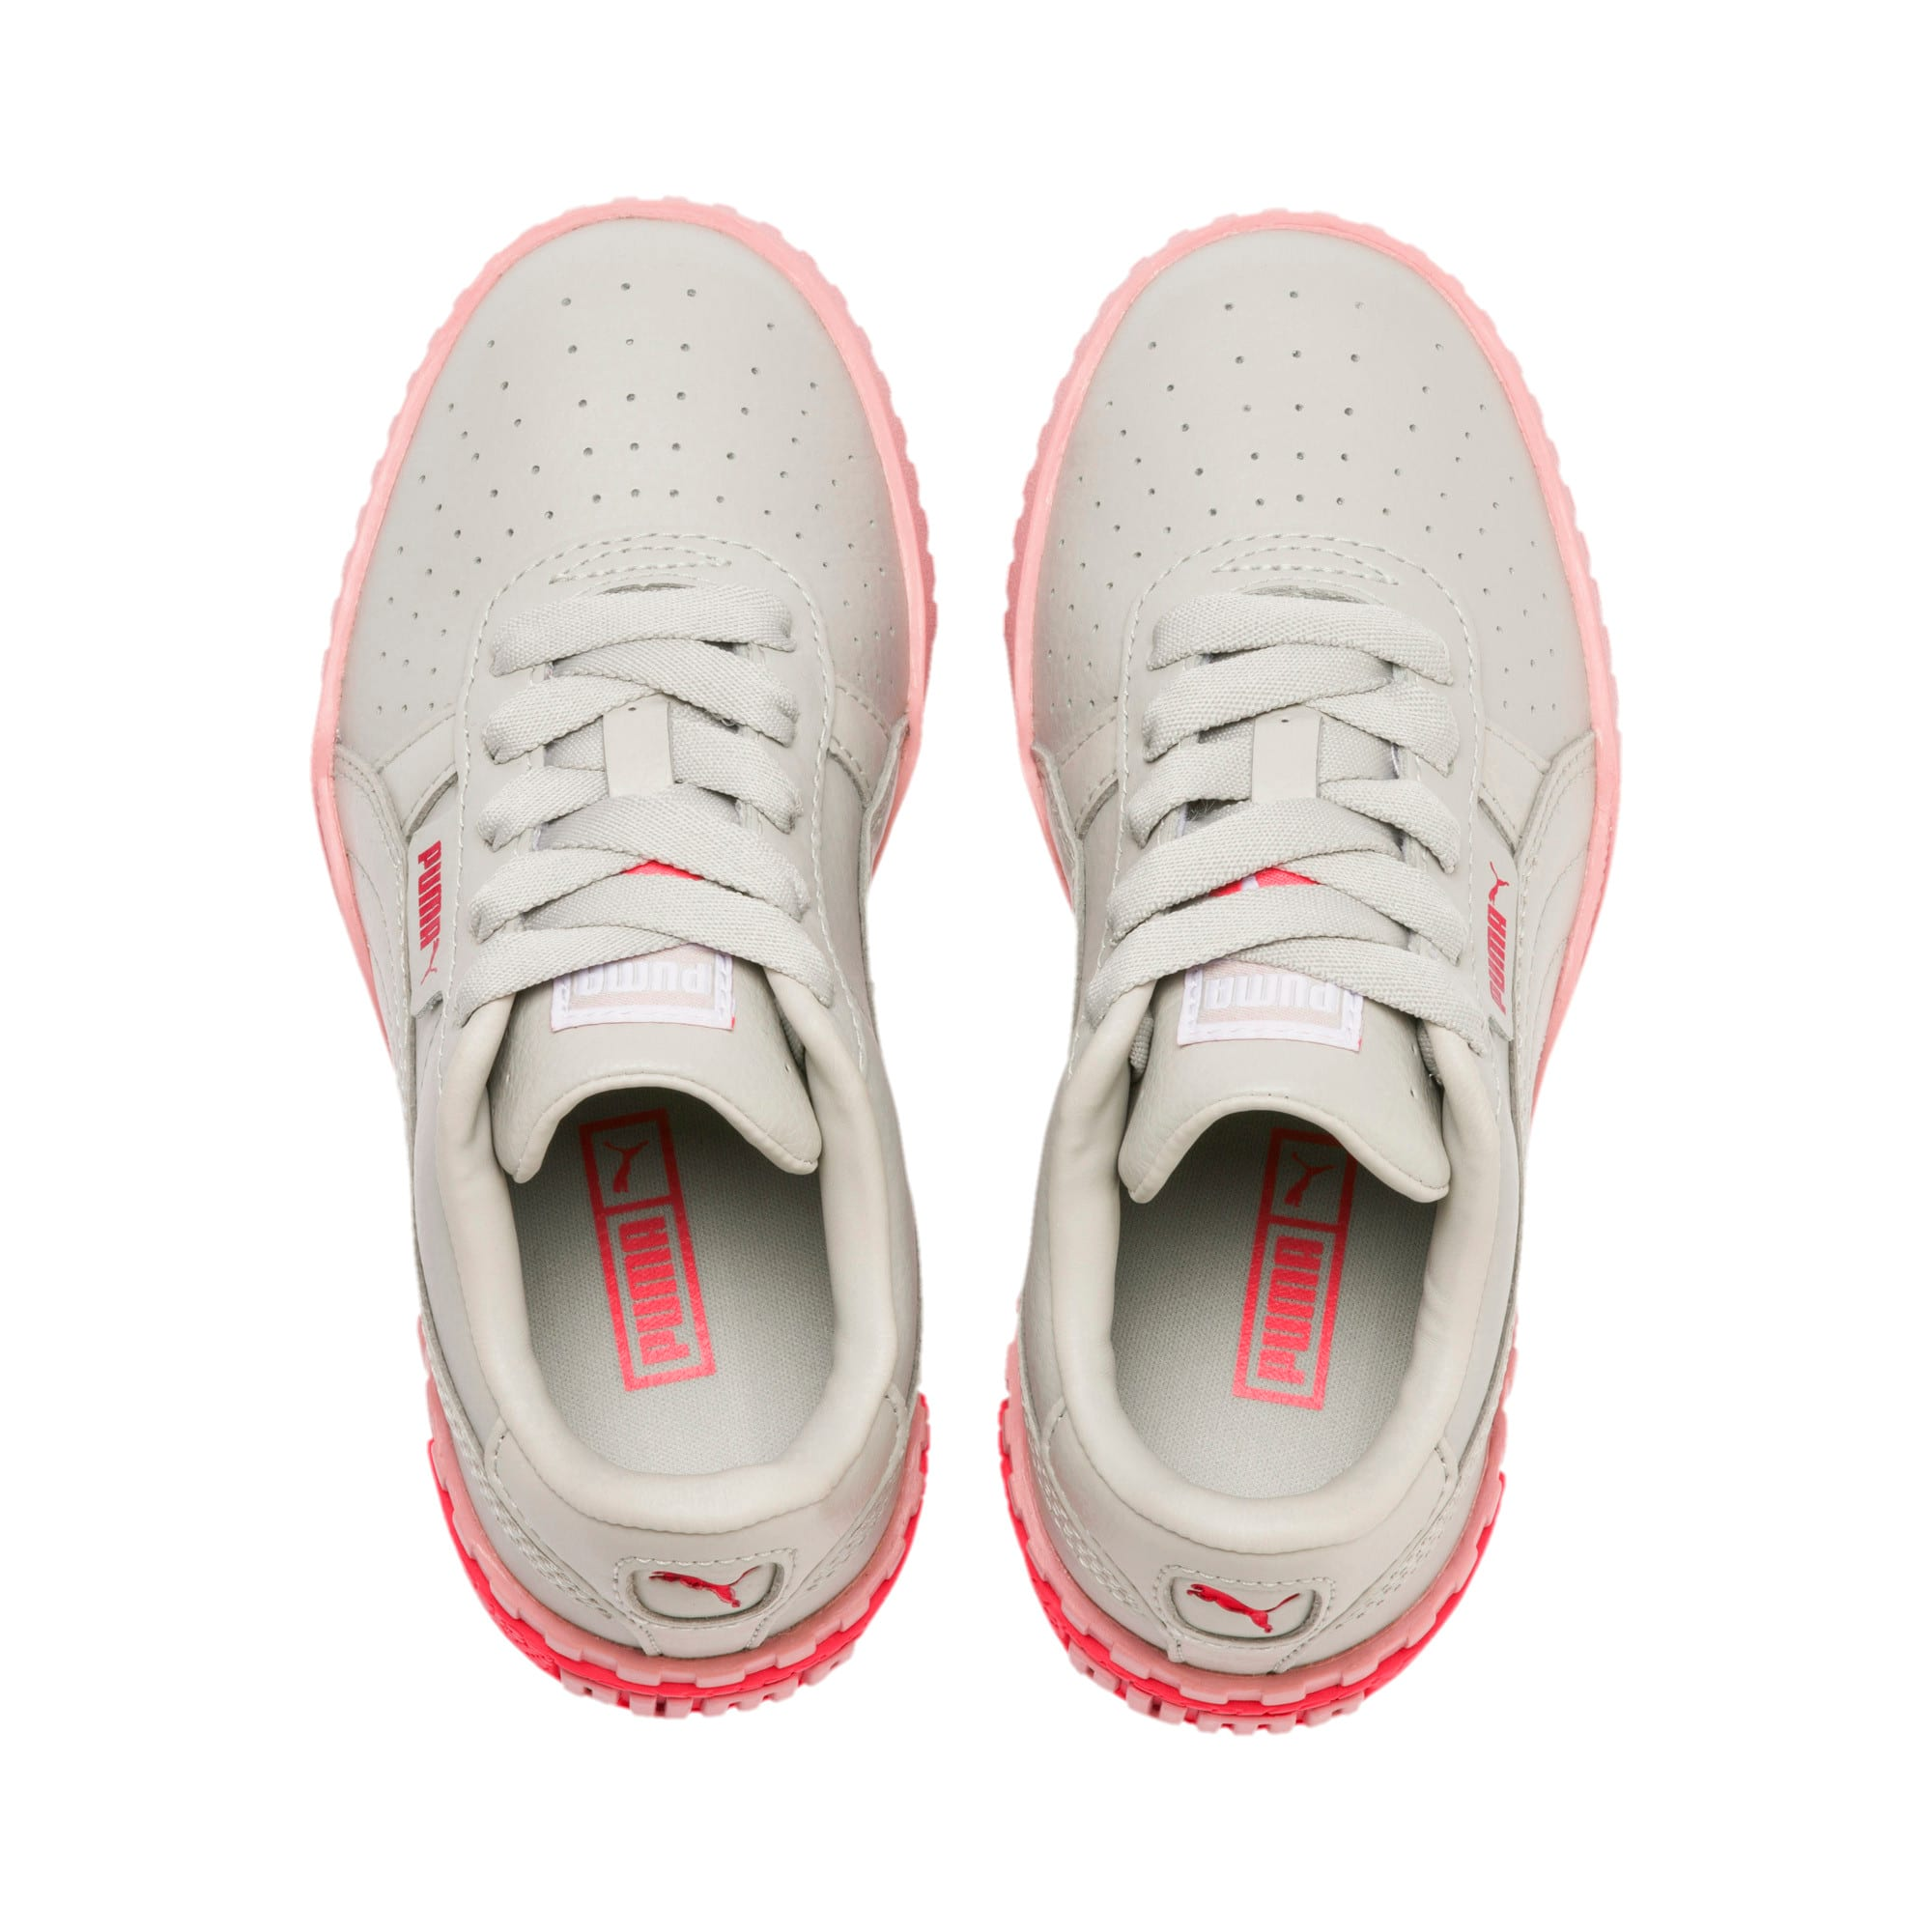 Thumbnail 6 of Cali Little Kids' Shoes, Gray Violet-Calypso Coral, medium